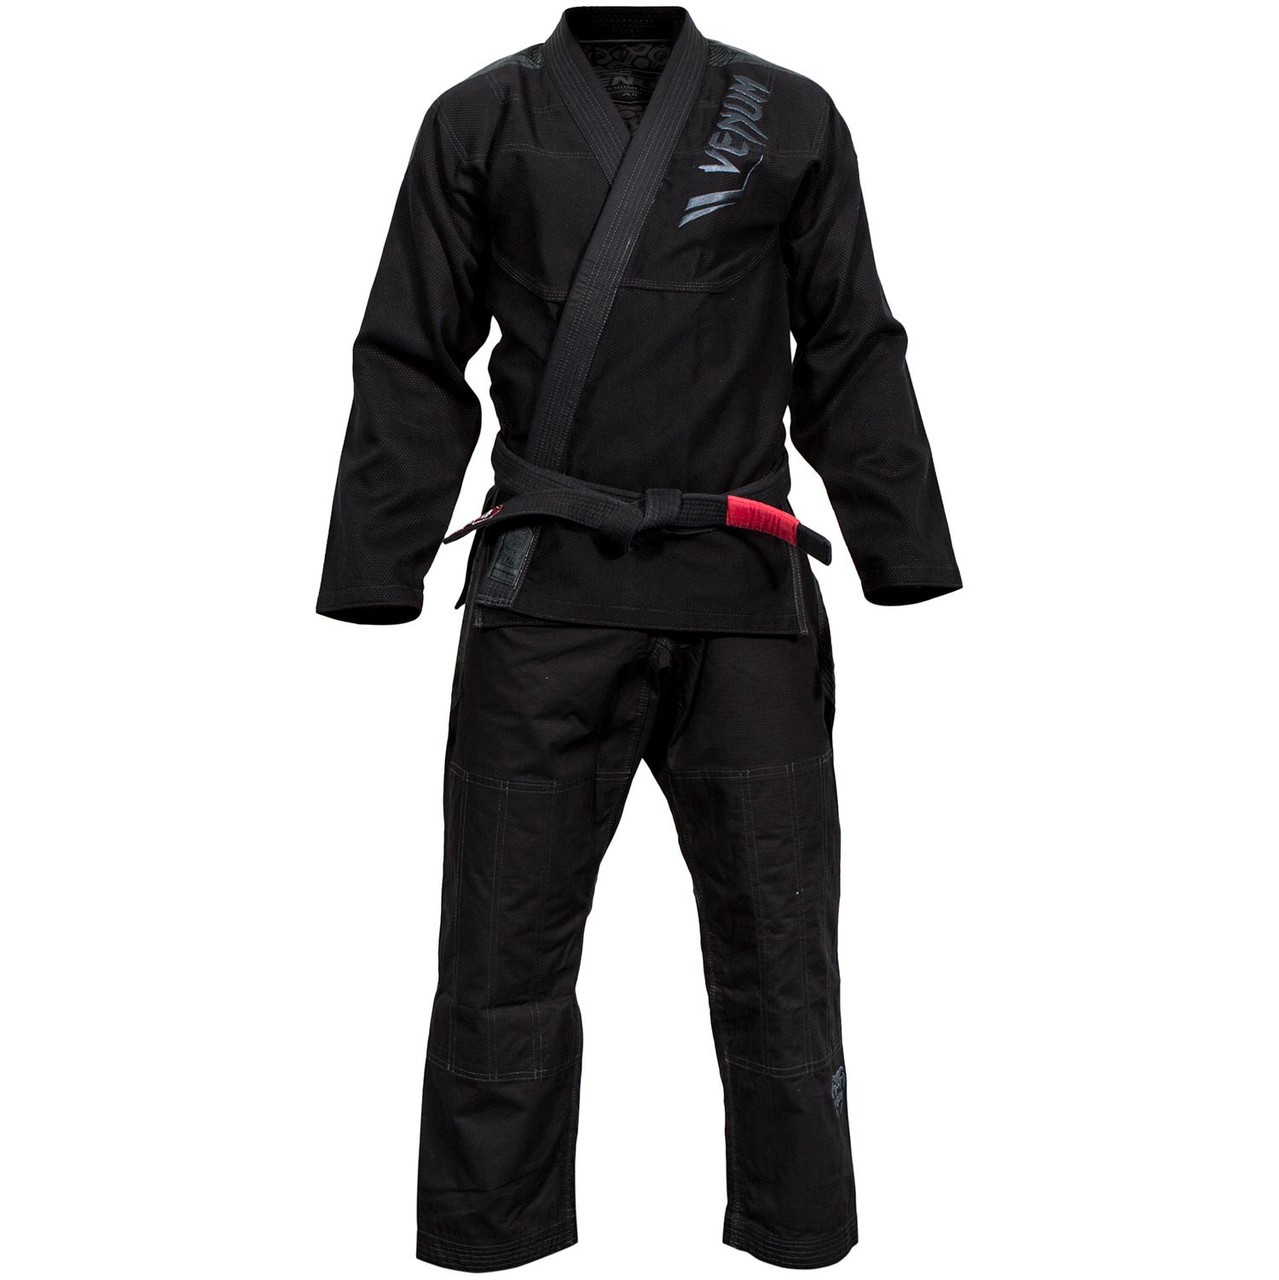 Full view of the Venum Elite BJJ GI in Black on black  is now available at www.thejiujitsushop.com  Enjoy Free Shipping from The Jiu Jitsu Shop today!